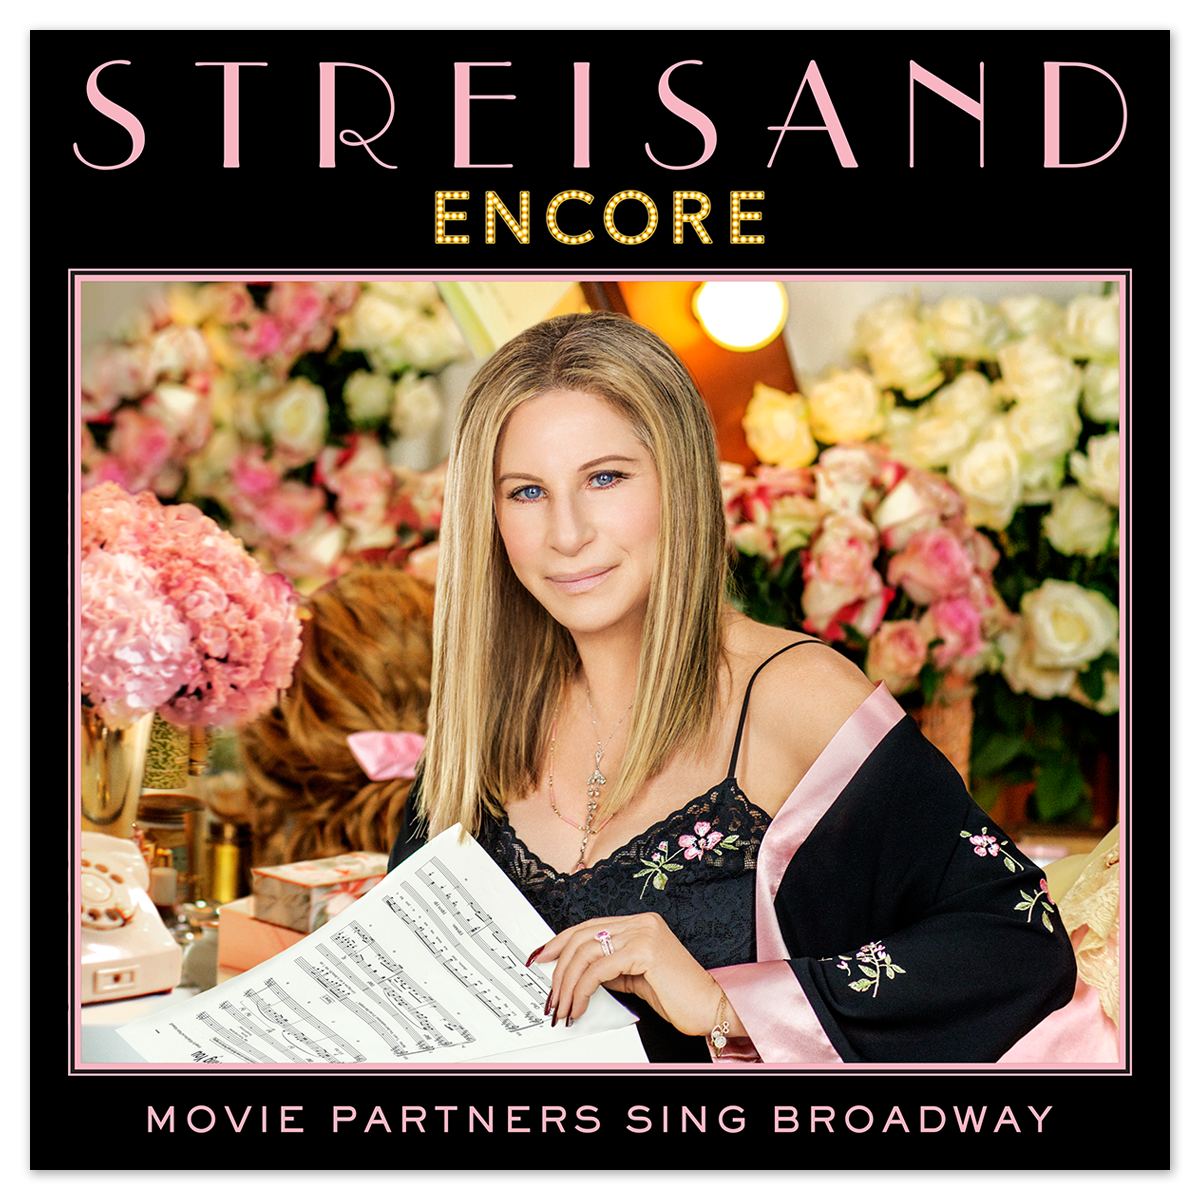 ENCORE: Movie Partners Sing Broadway MP3